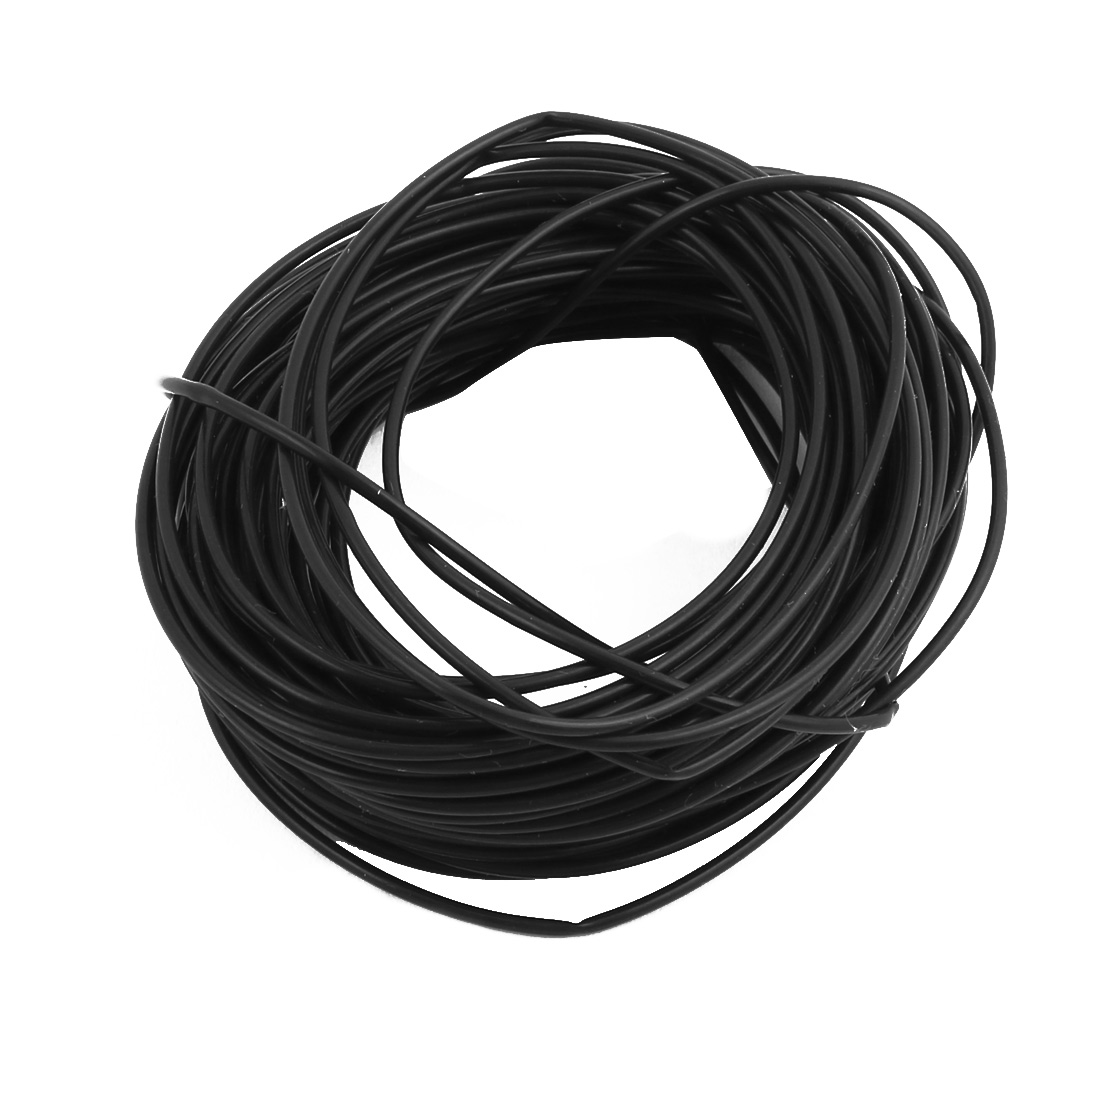 0.96mm x 1.26mm PTFE Resistant High Temperature Black Tubing 5 Meters 16.4Ft